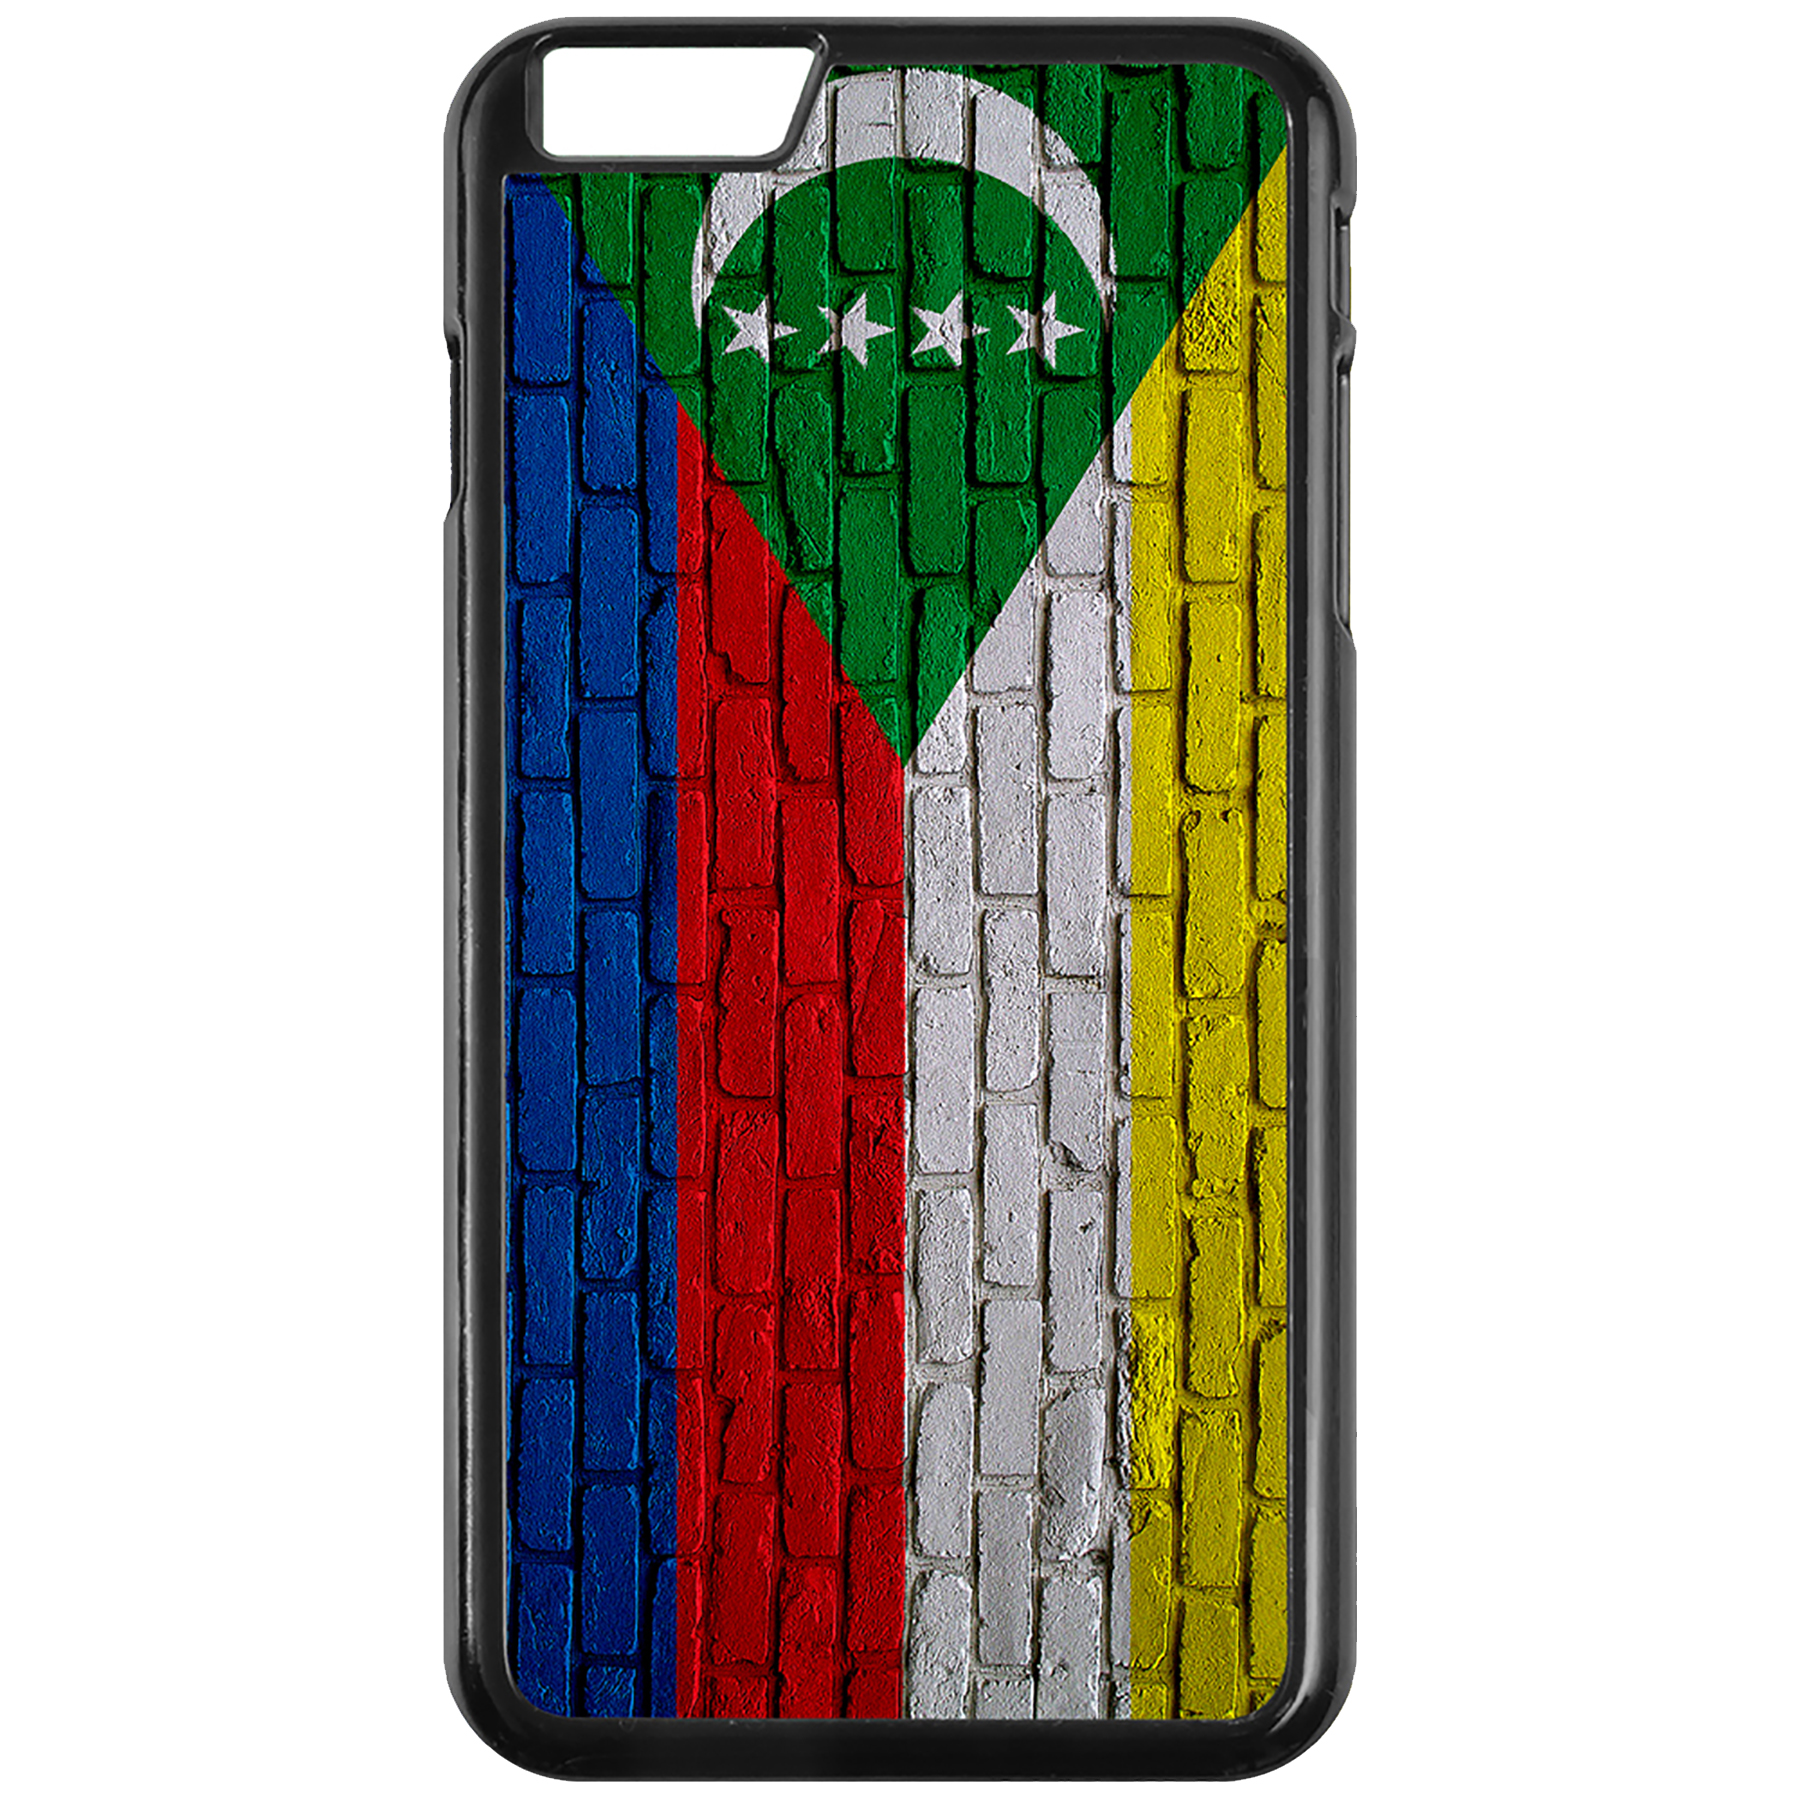 Apple-iPhone-Case-with-Flag-of-Comoros-Comorian-Many-Design-Options thumbnail 54